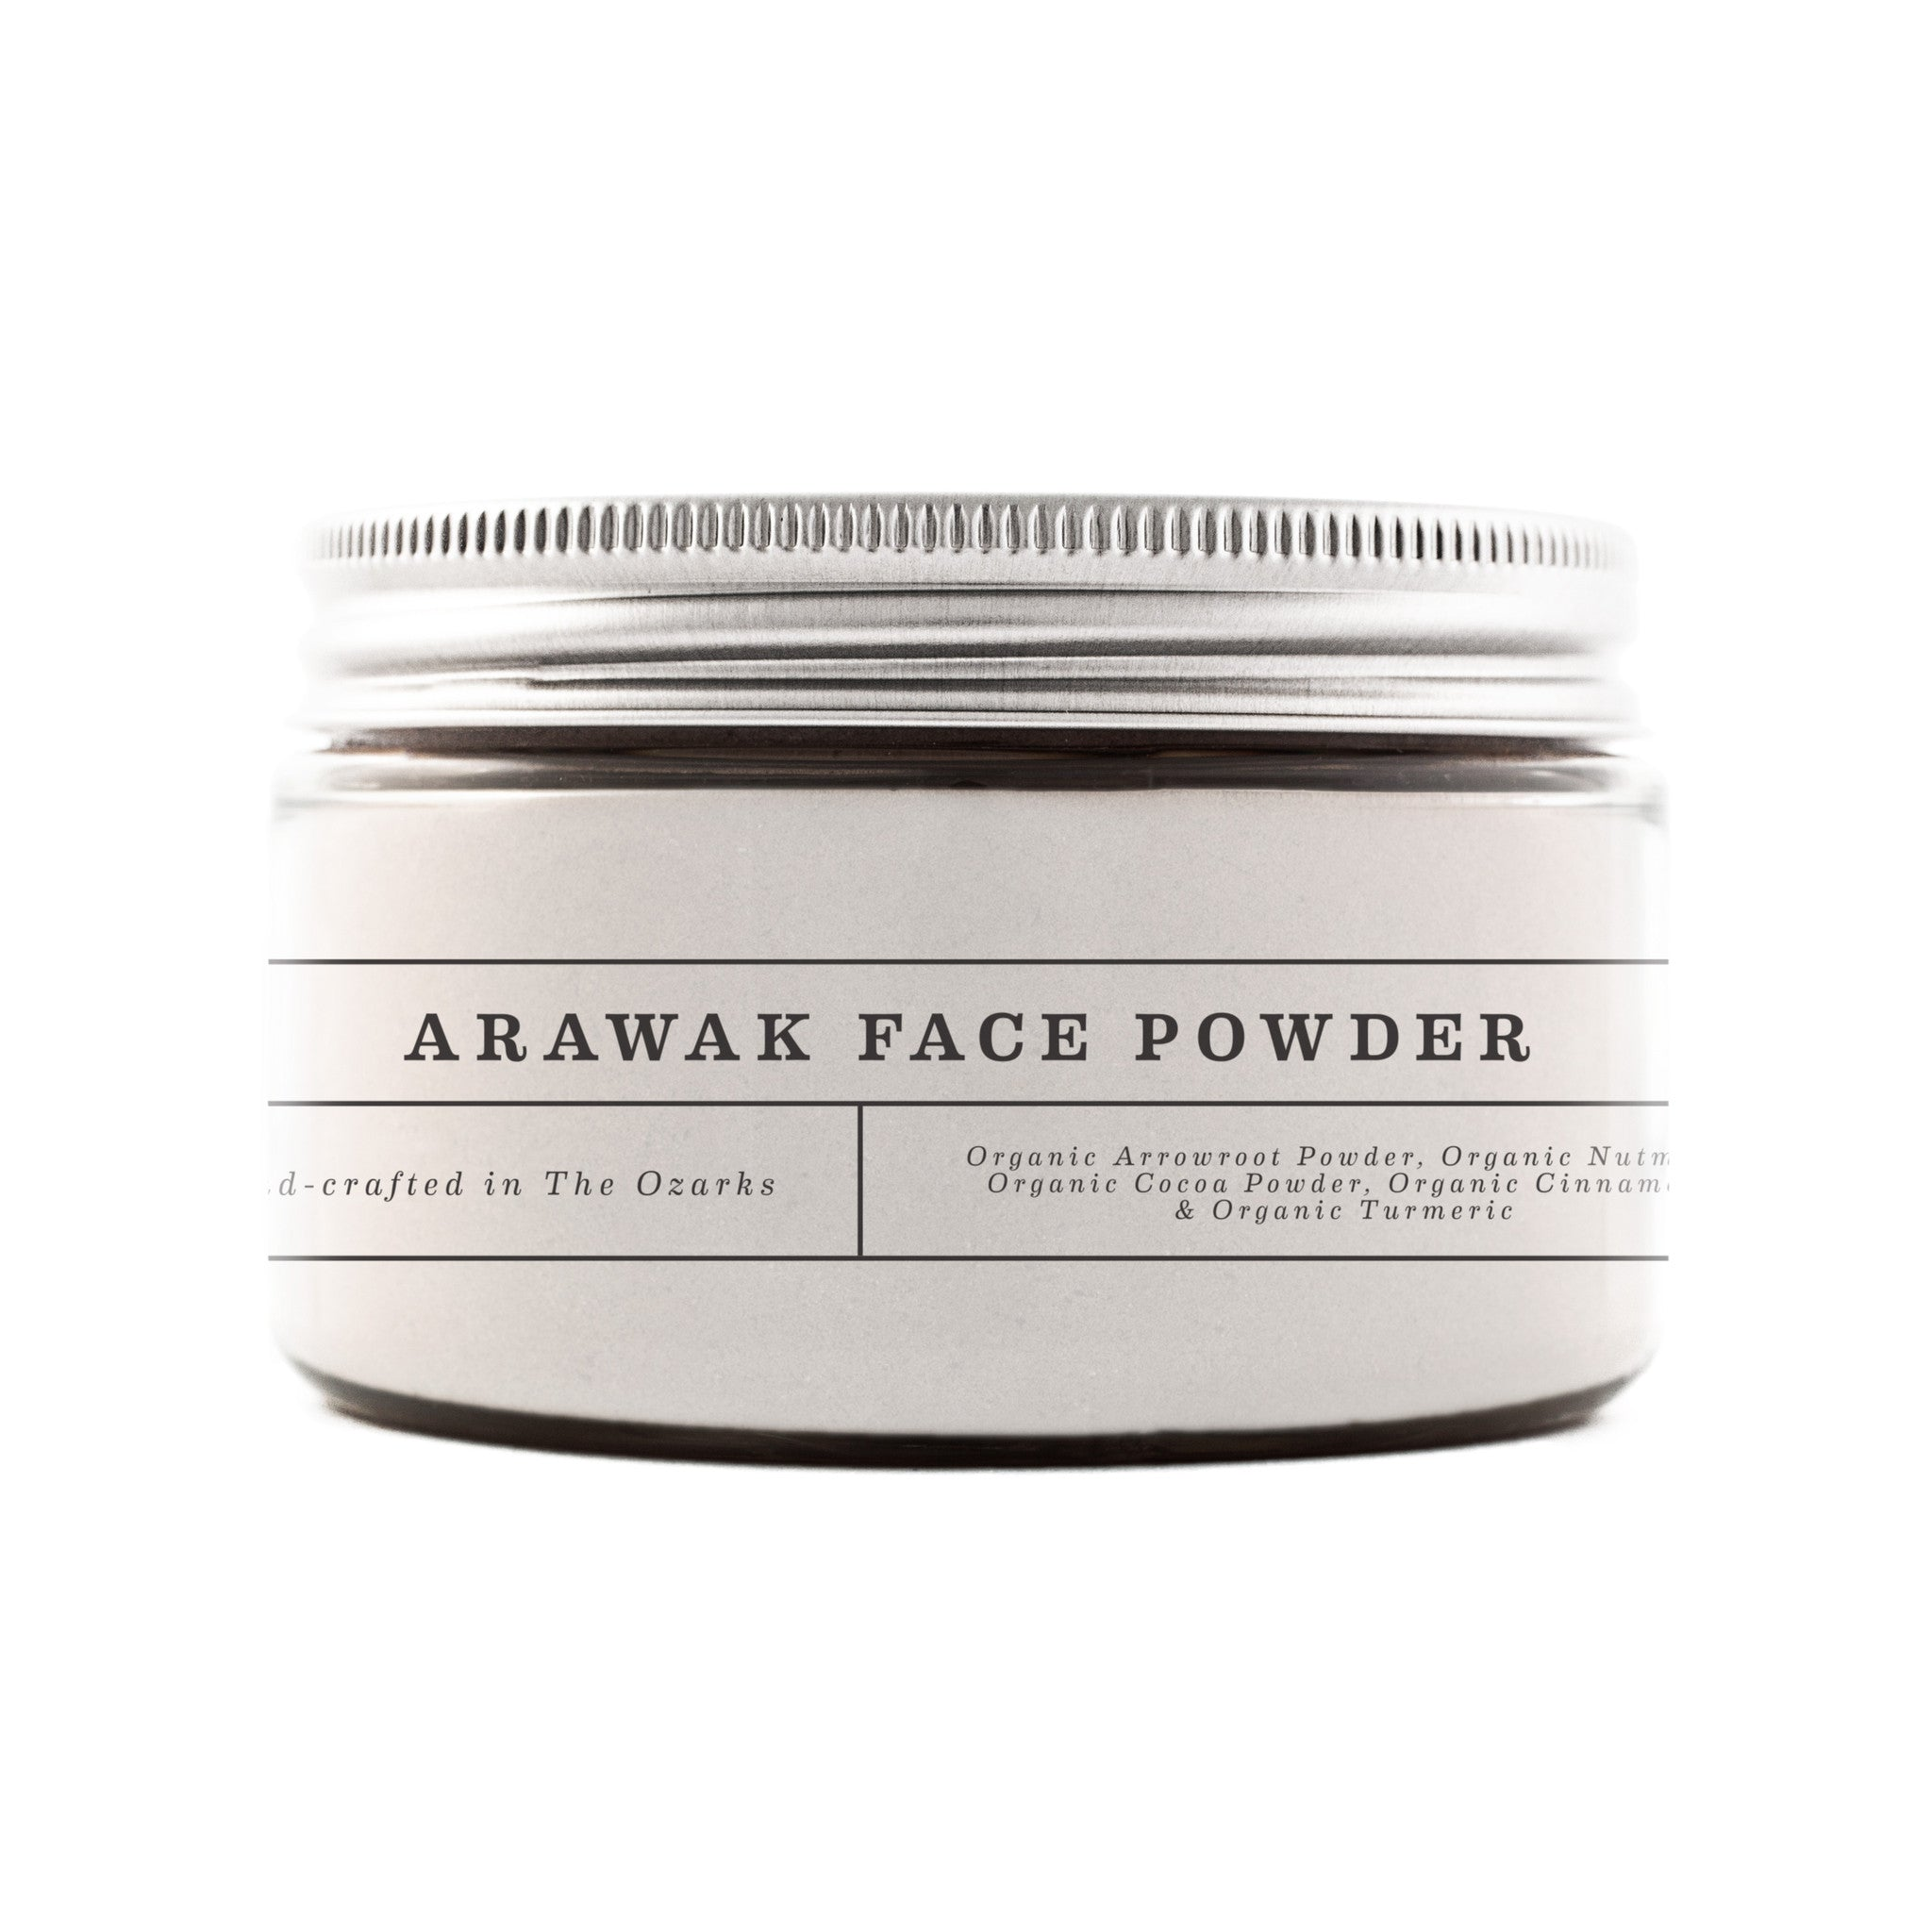 Arawak (air-a-wok) Face Powder